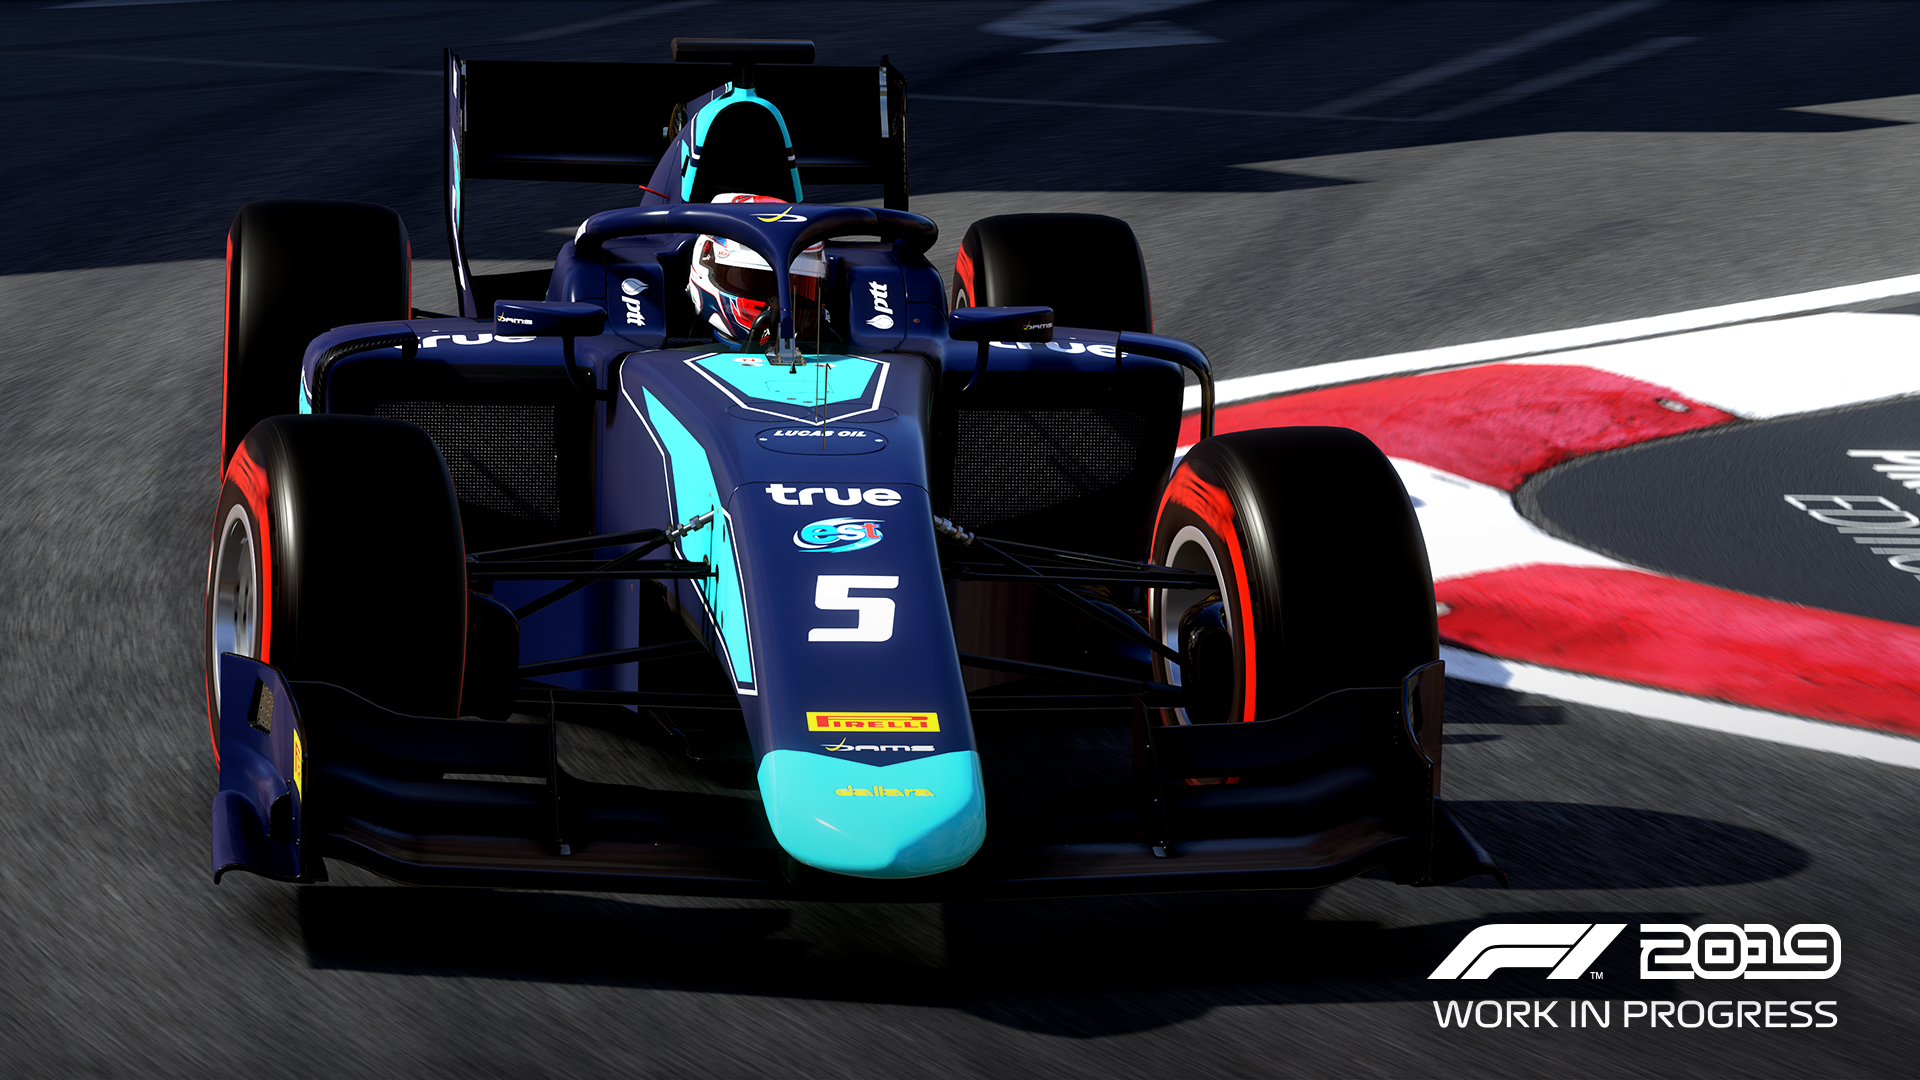 F1 2019 review: F2 feeder series builds up a great racing game - Polygon